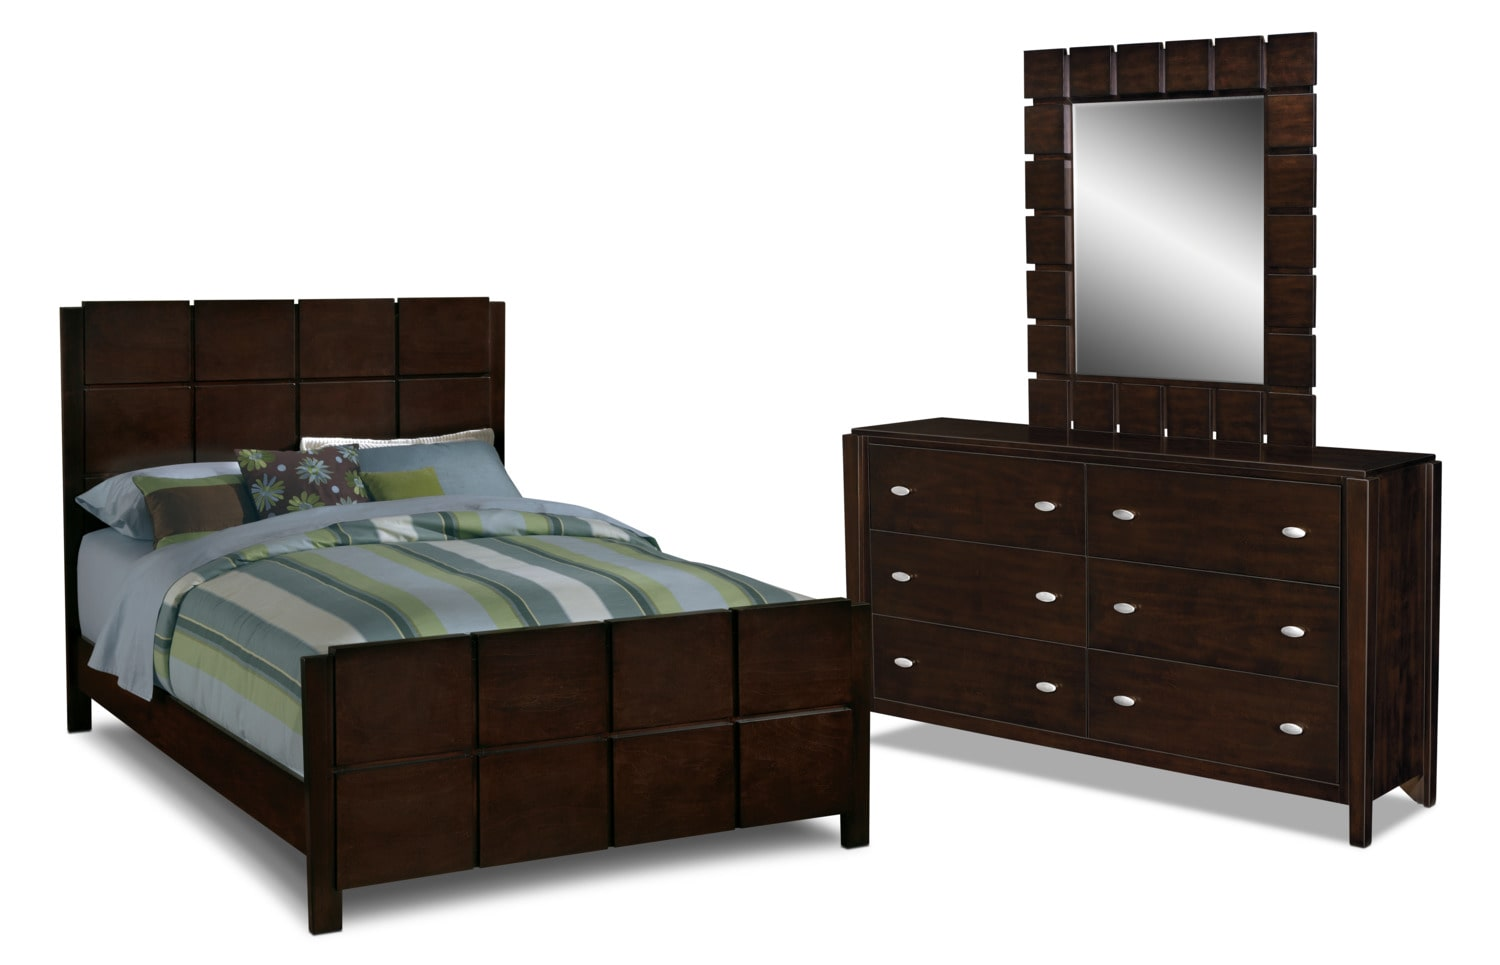 Mosaic 5-Piece Queen Bedroom Set - Dark Brown | Value City Furniture ...